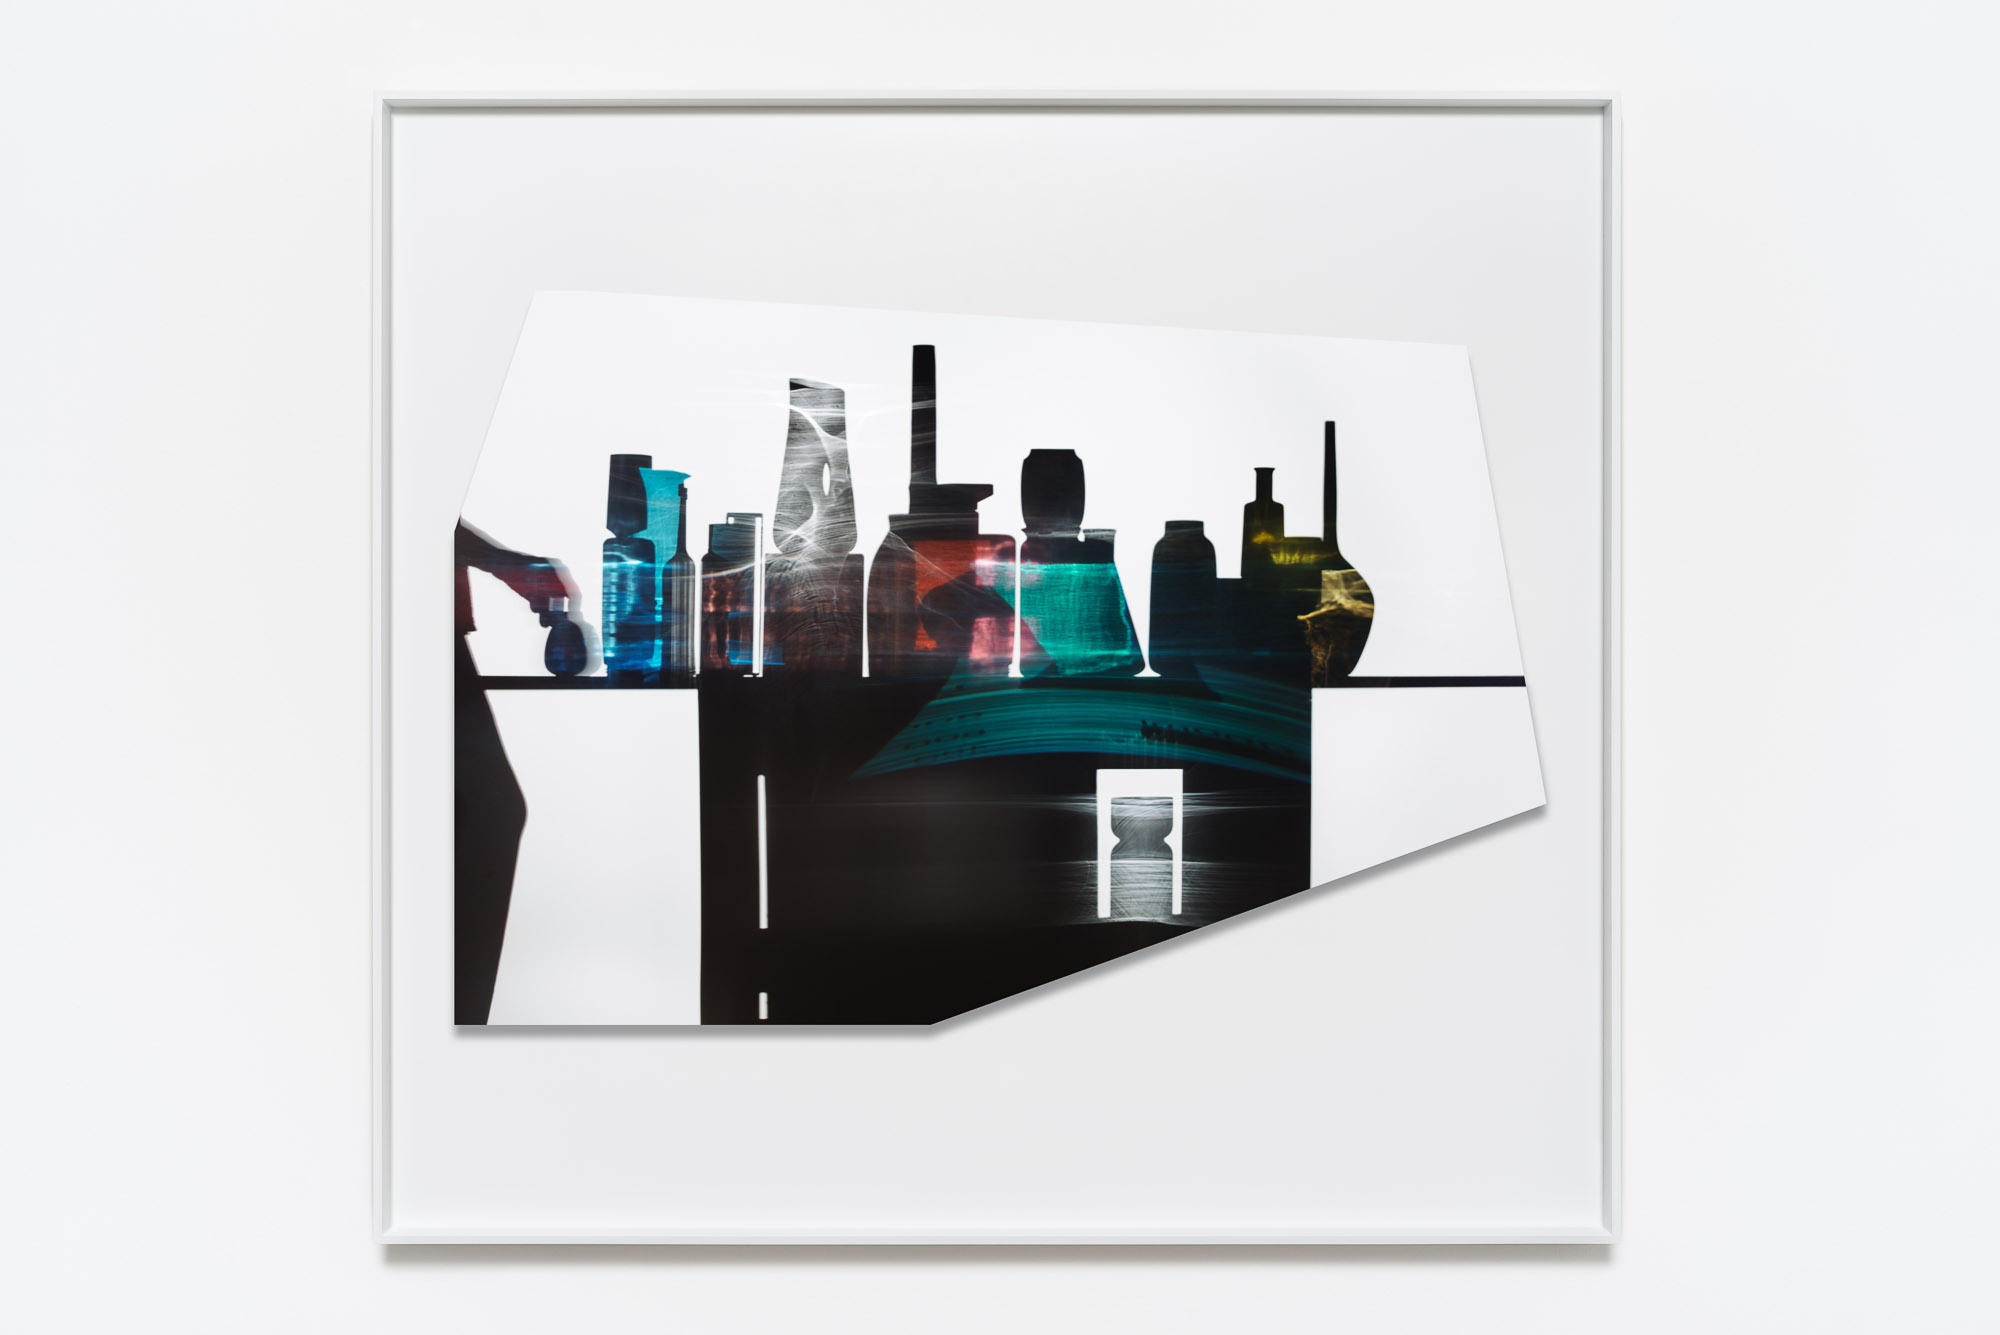 Uta Barth, In the Light and Shadow of Morandi (17.11), 2017, face mounted, raised, shaped, Archival Pigment print in artist frame, 48.75 x 52.75 x 1.75 inches (framed), edition of 6, 2 APs.